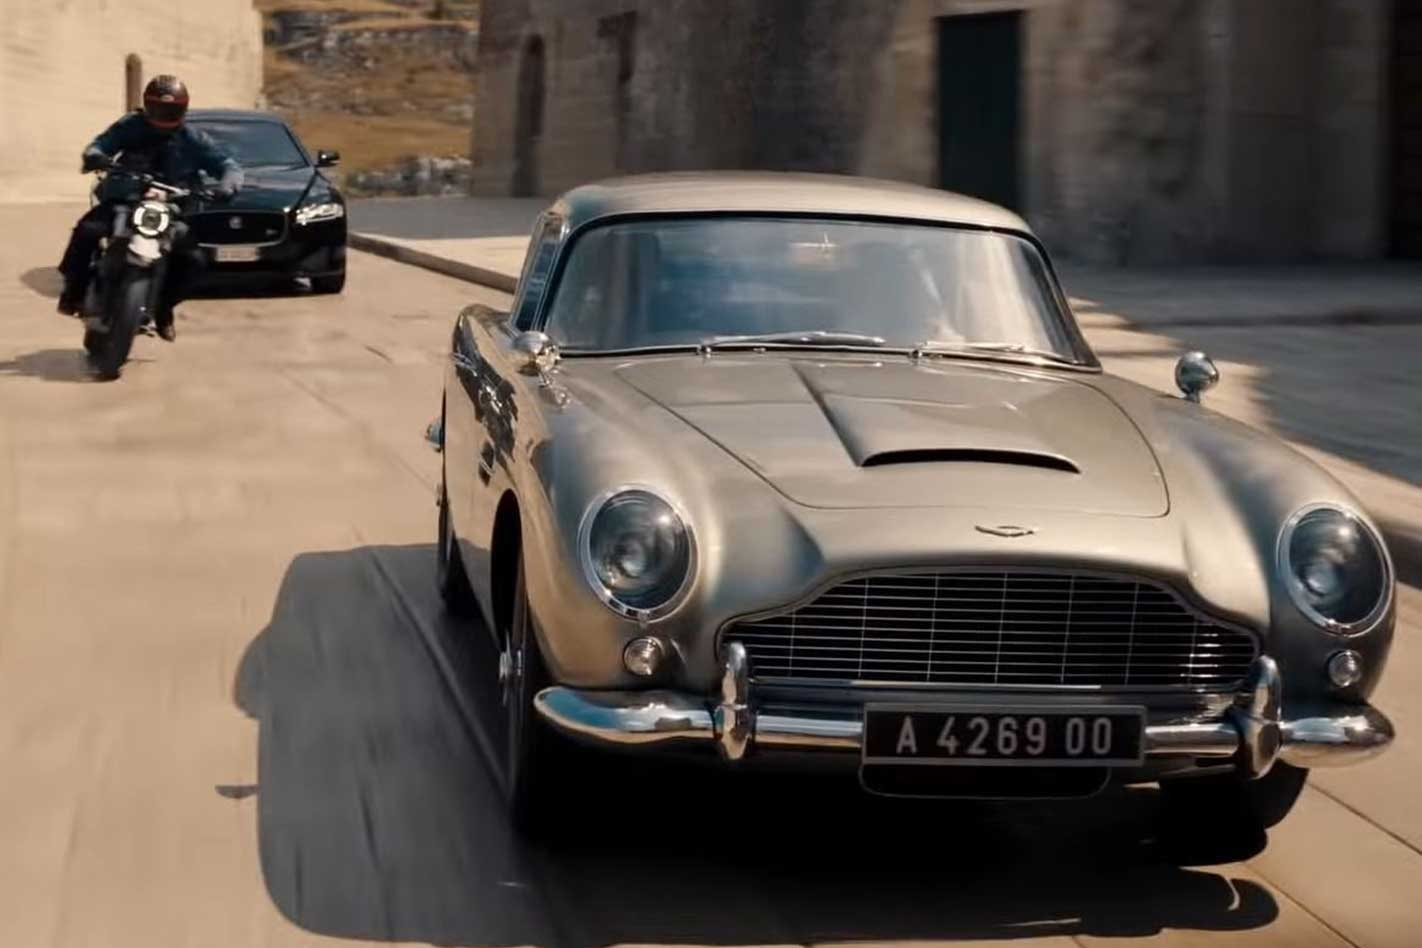 The No Time to Die Aston Martin DB5 stunt car with an M3-engine